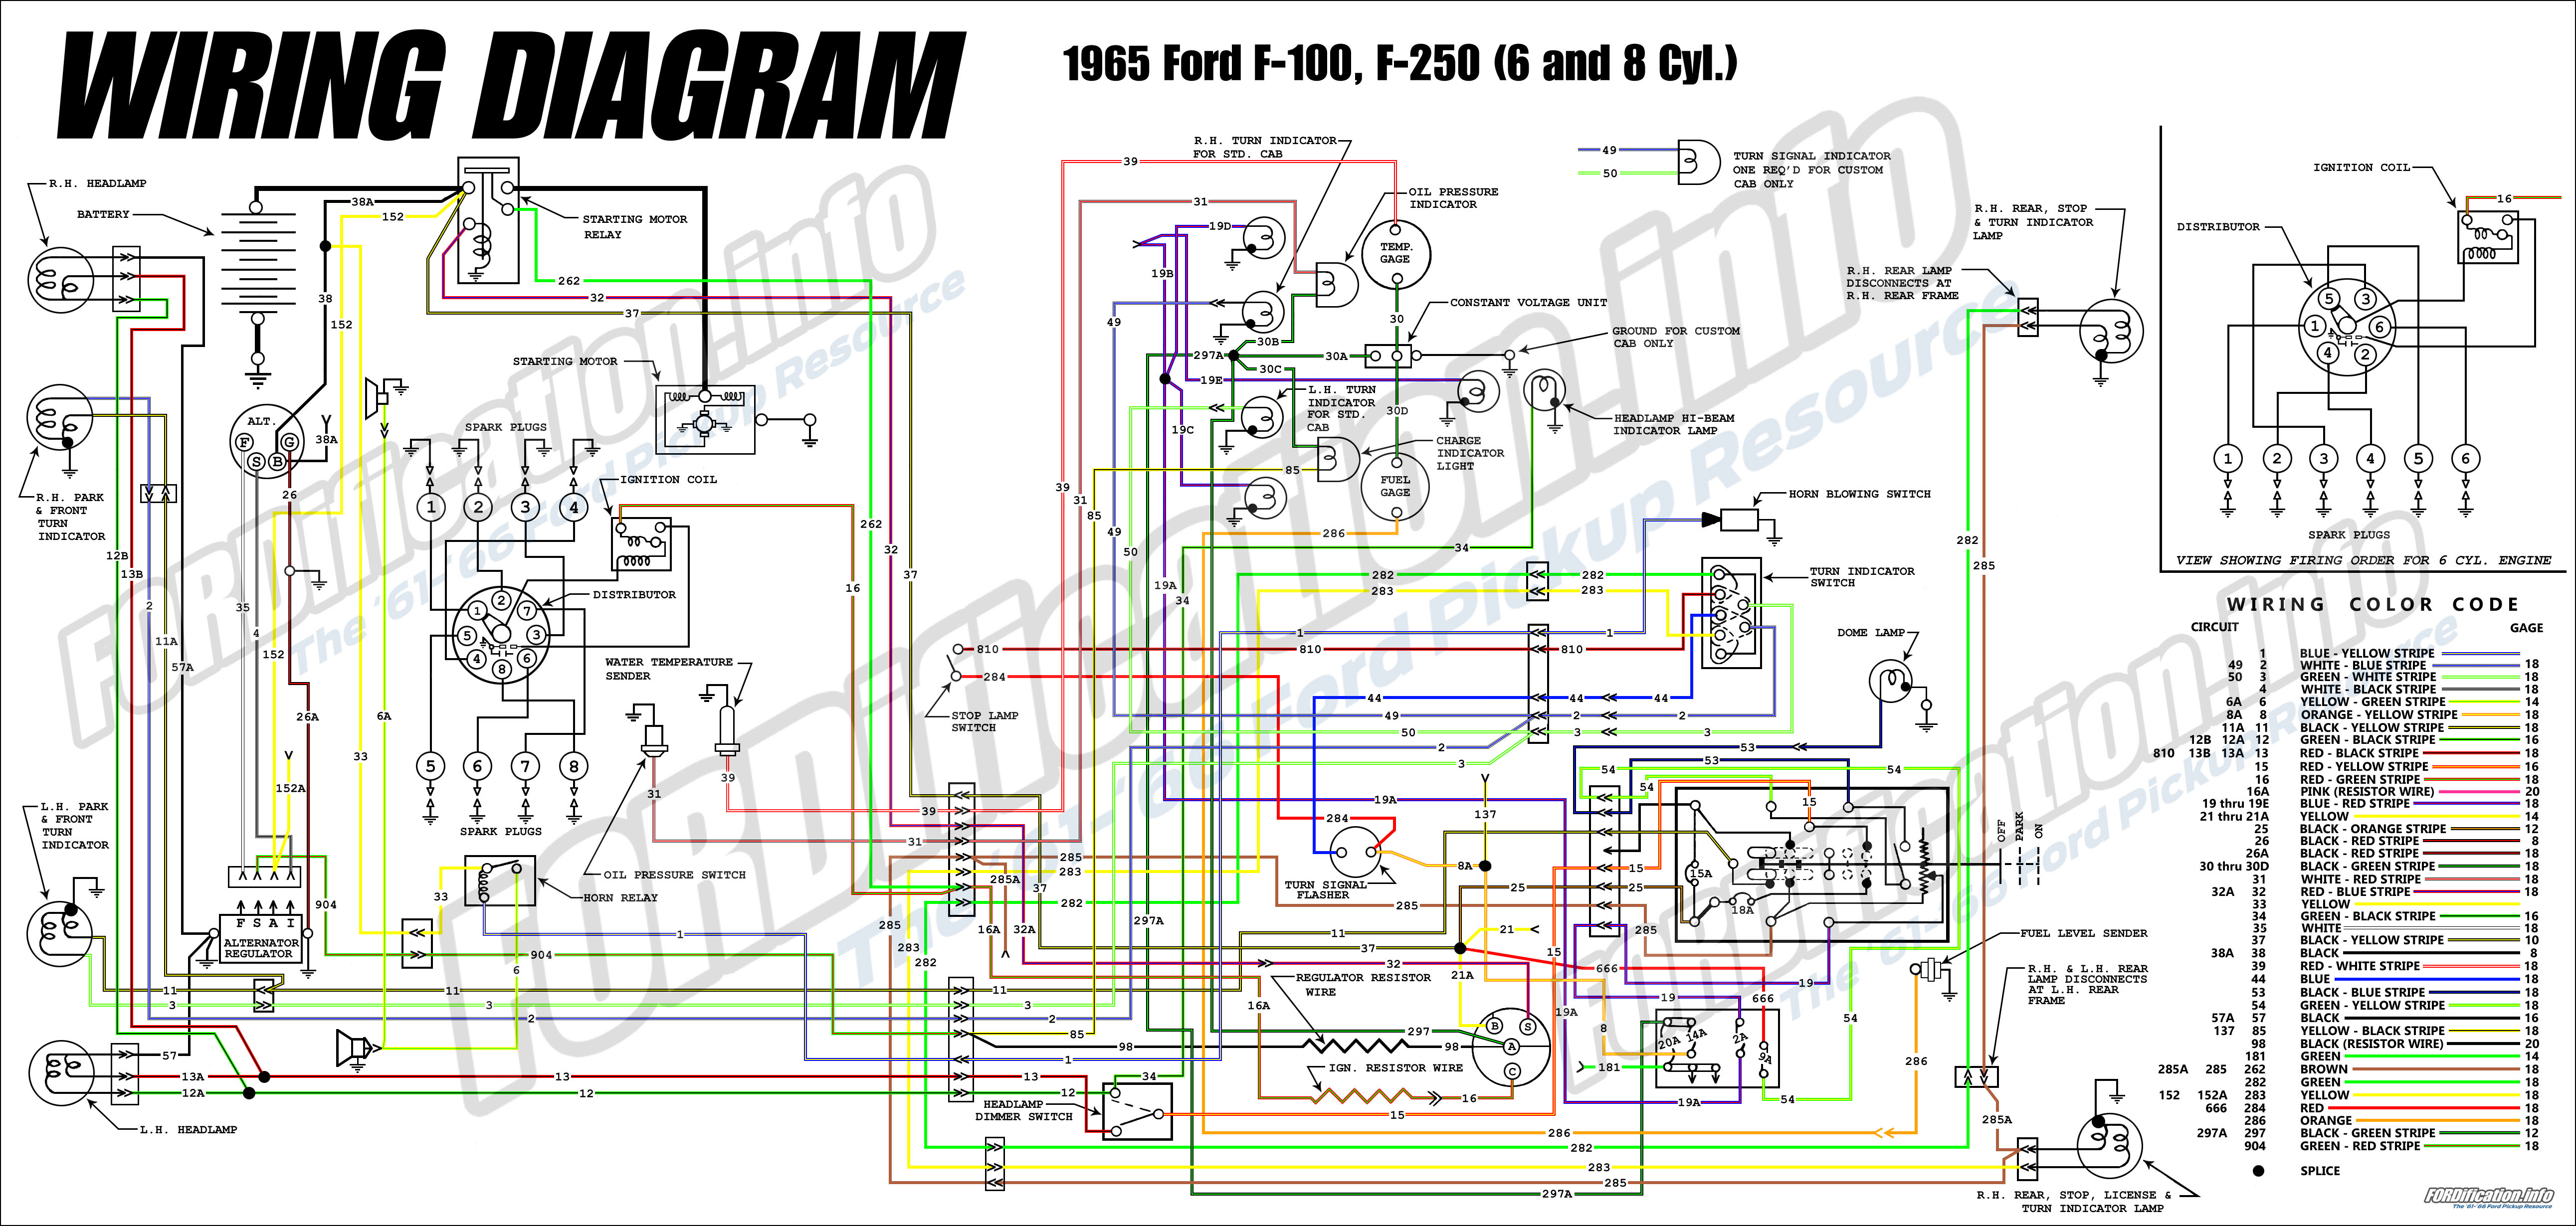 1954 Ford F100 Wiring Diagram Sunpro Fuel Gauge Wiring Diagram Begeboy Wiring Diagram Source